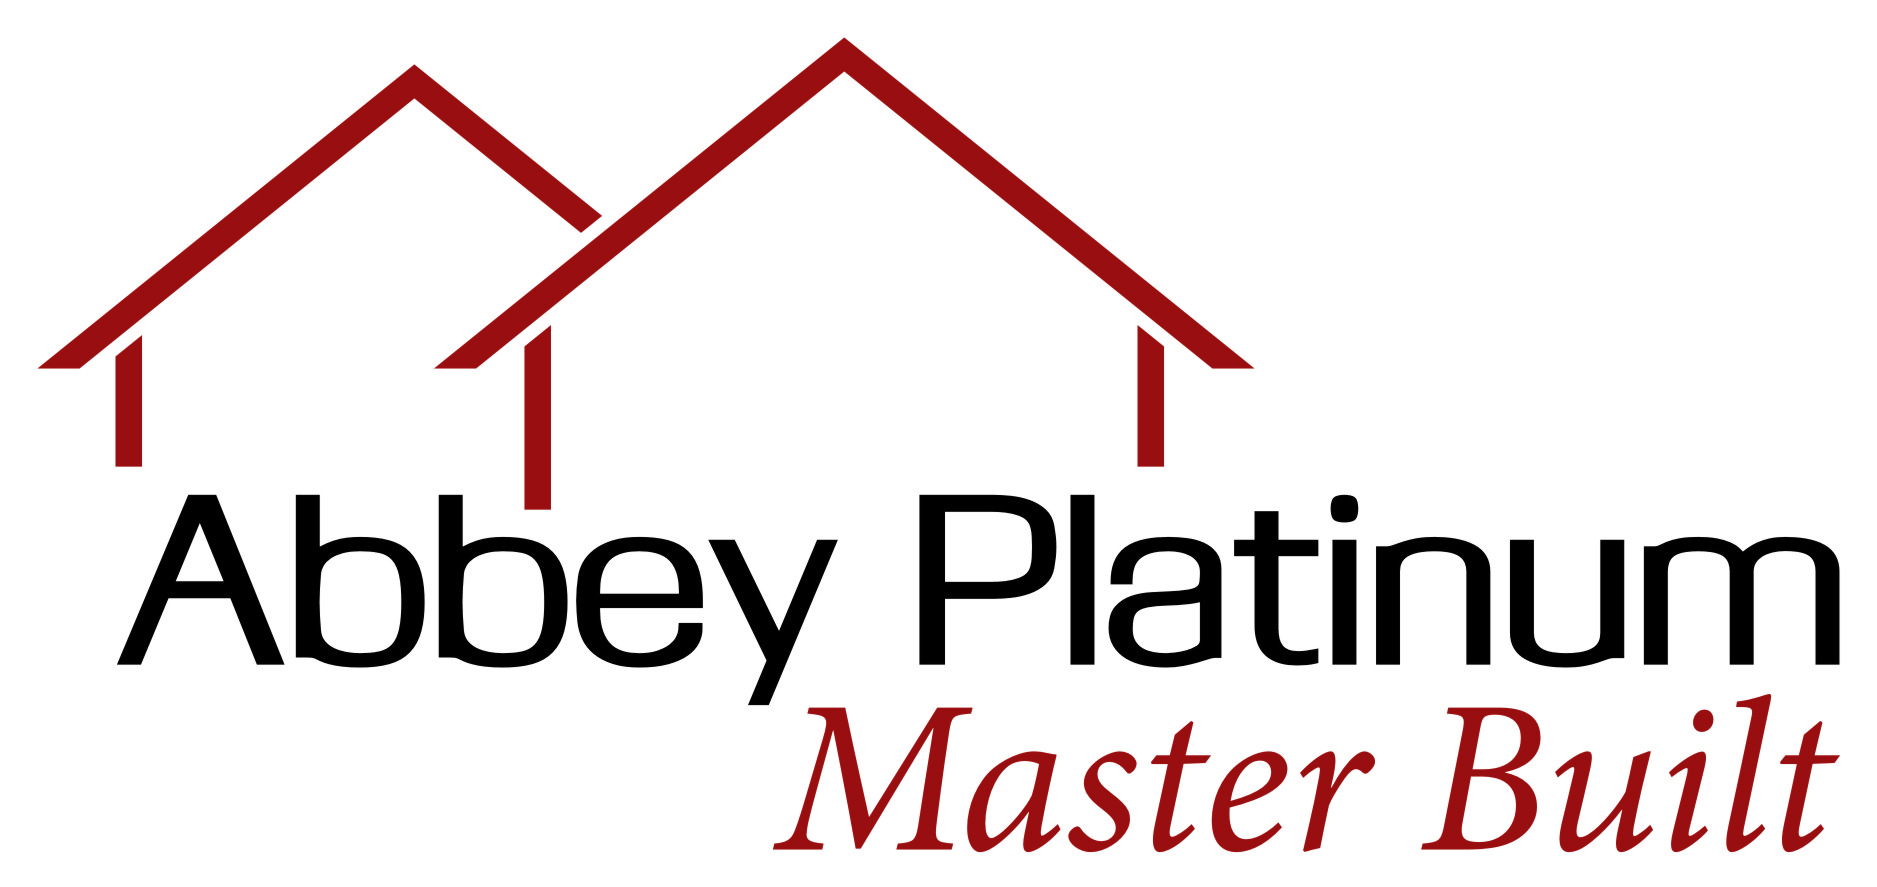 ABBEY PLATINUM MASTER BUILT INC logo